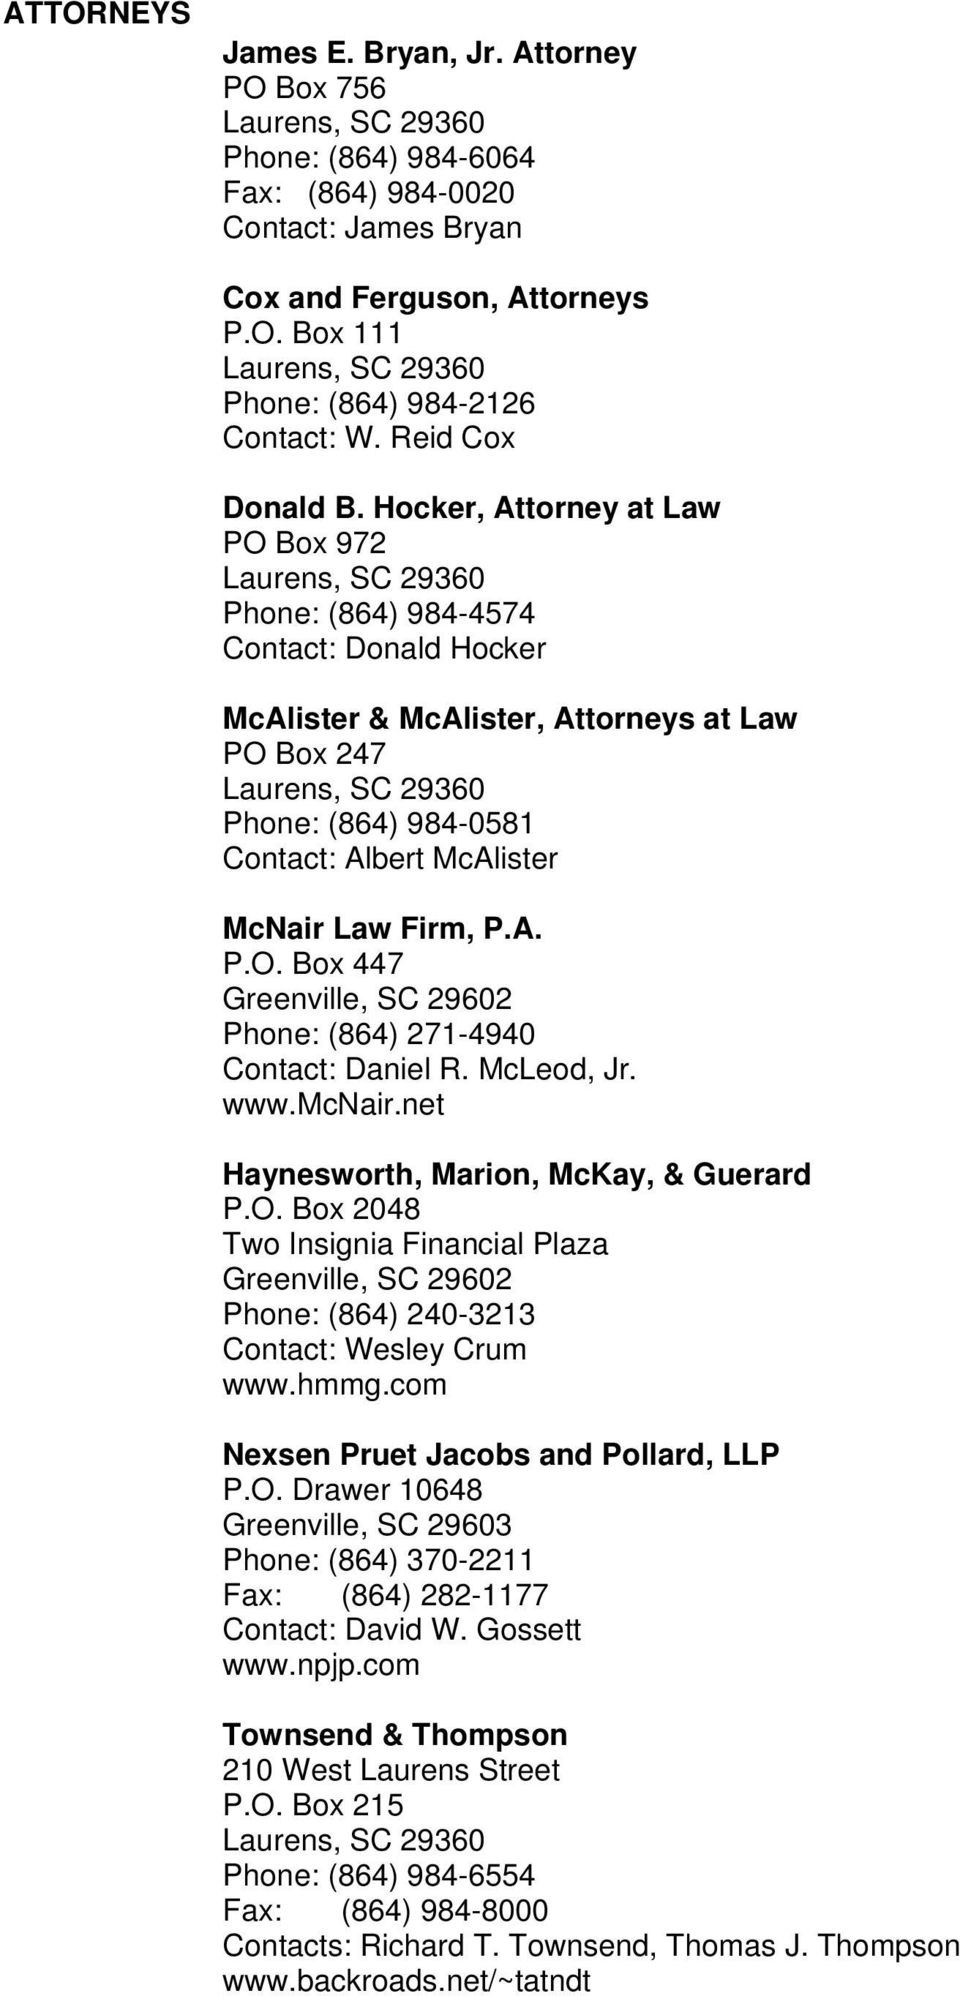 Hocker, Attorney at Law PO Box 972 Phone: (864) 984-4574 Contact: Donald Hocker McAlister & McAlister, Attorneys at Law PO Box 247 Phone: (864) 984-0581 Contact: Albert McAlister McNair Law Firm, P.A. P.O. Box 447 Greenville, SC 29602 Phone: (864) 271-4940 Contact: Daniel R.